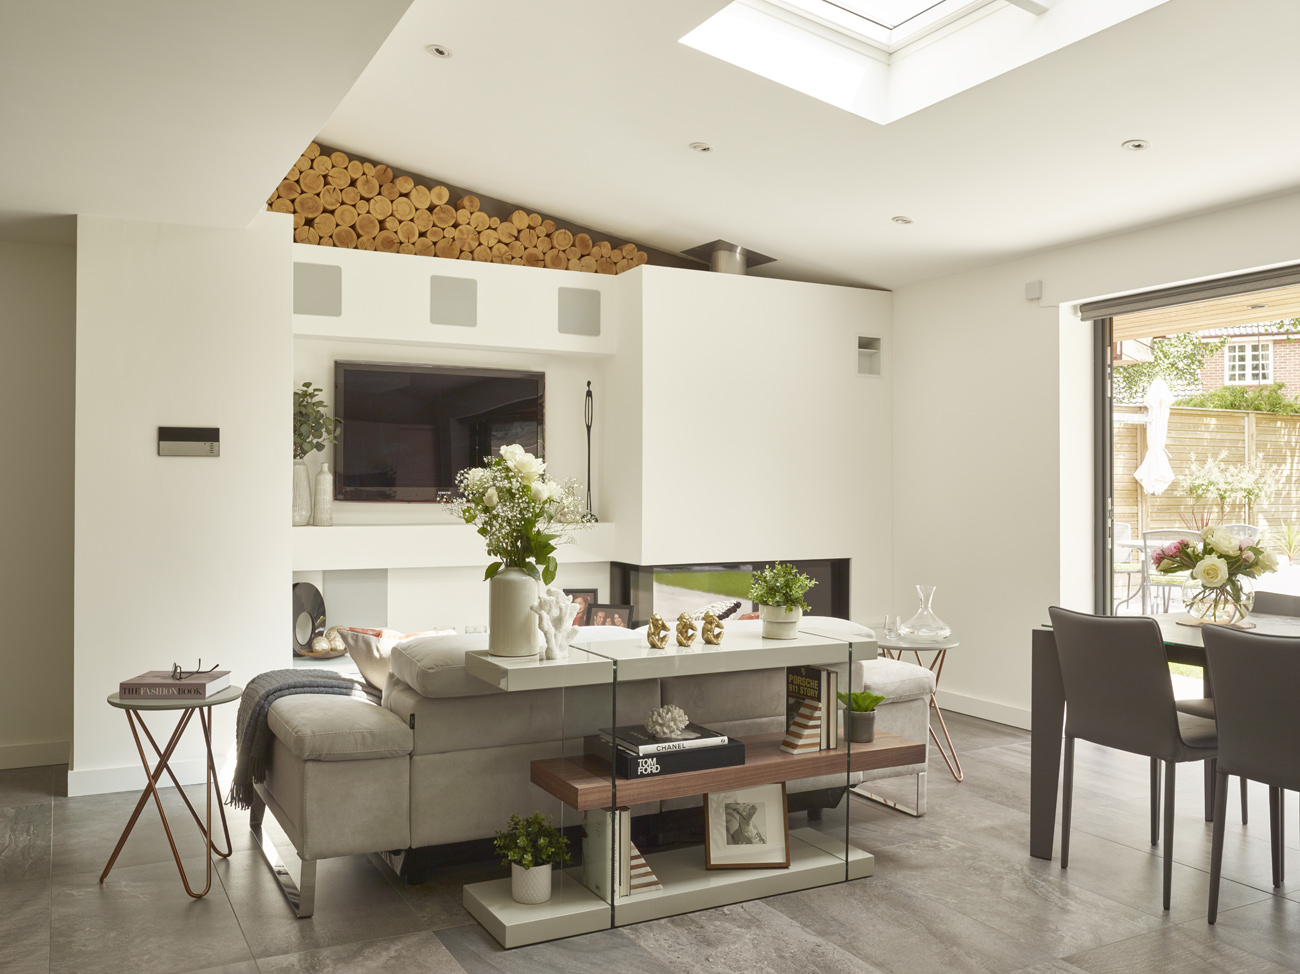 How can your home design improve your wellbeing? 3